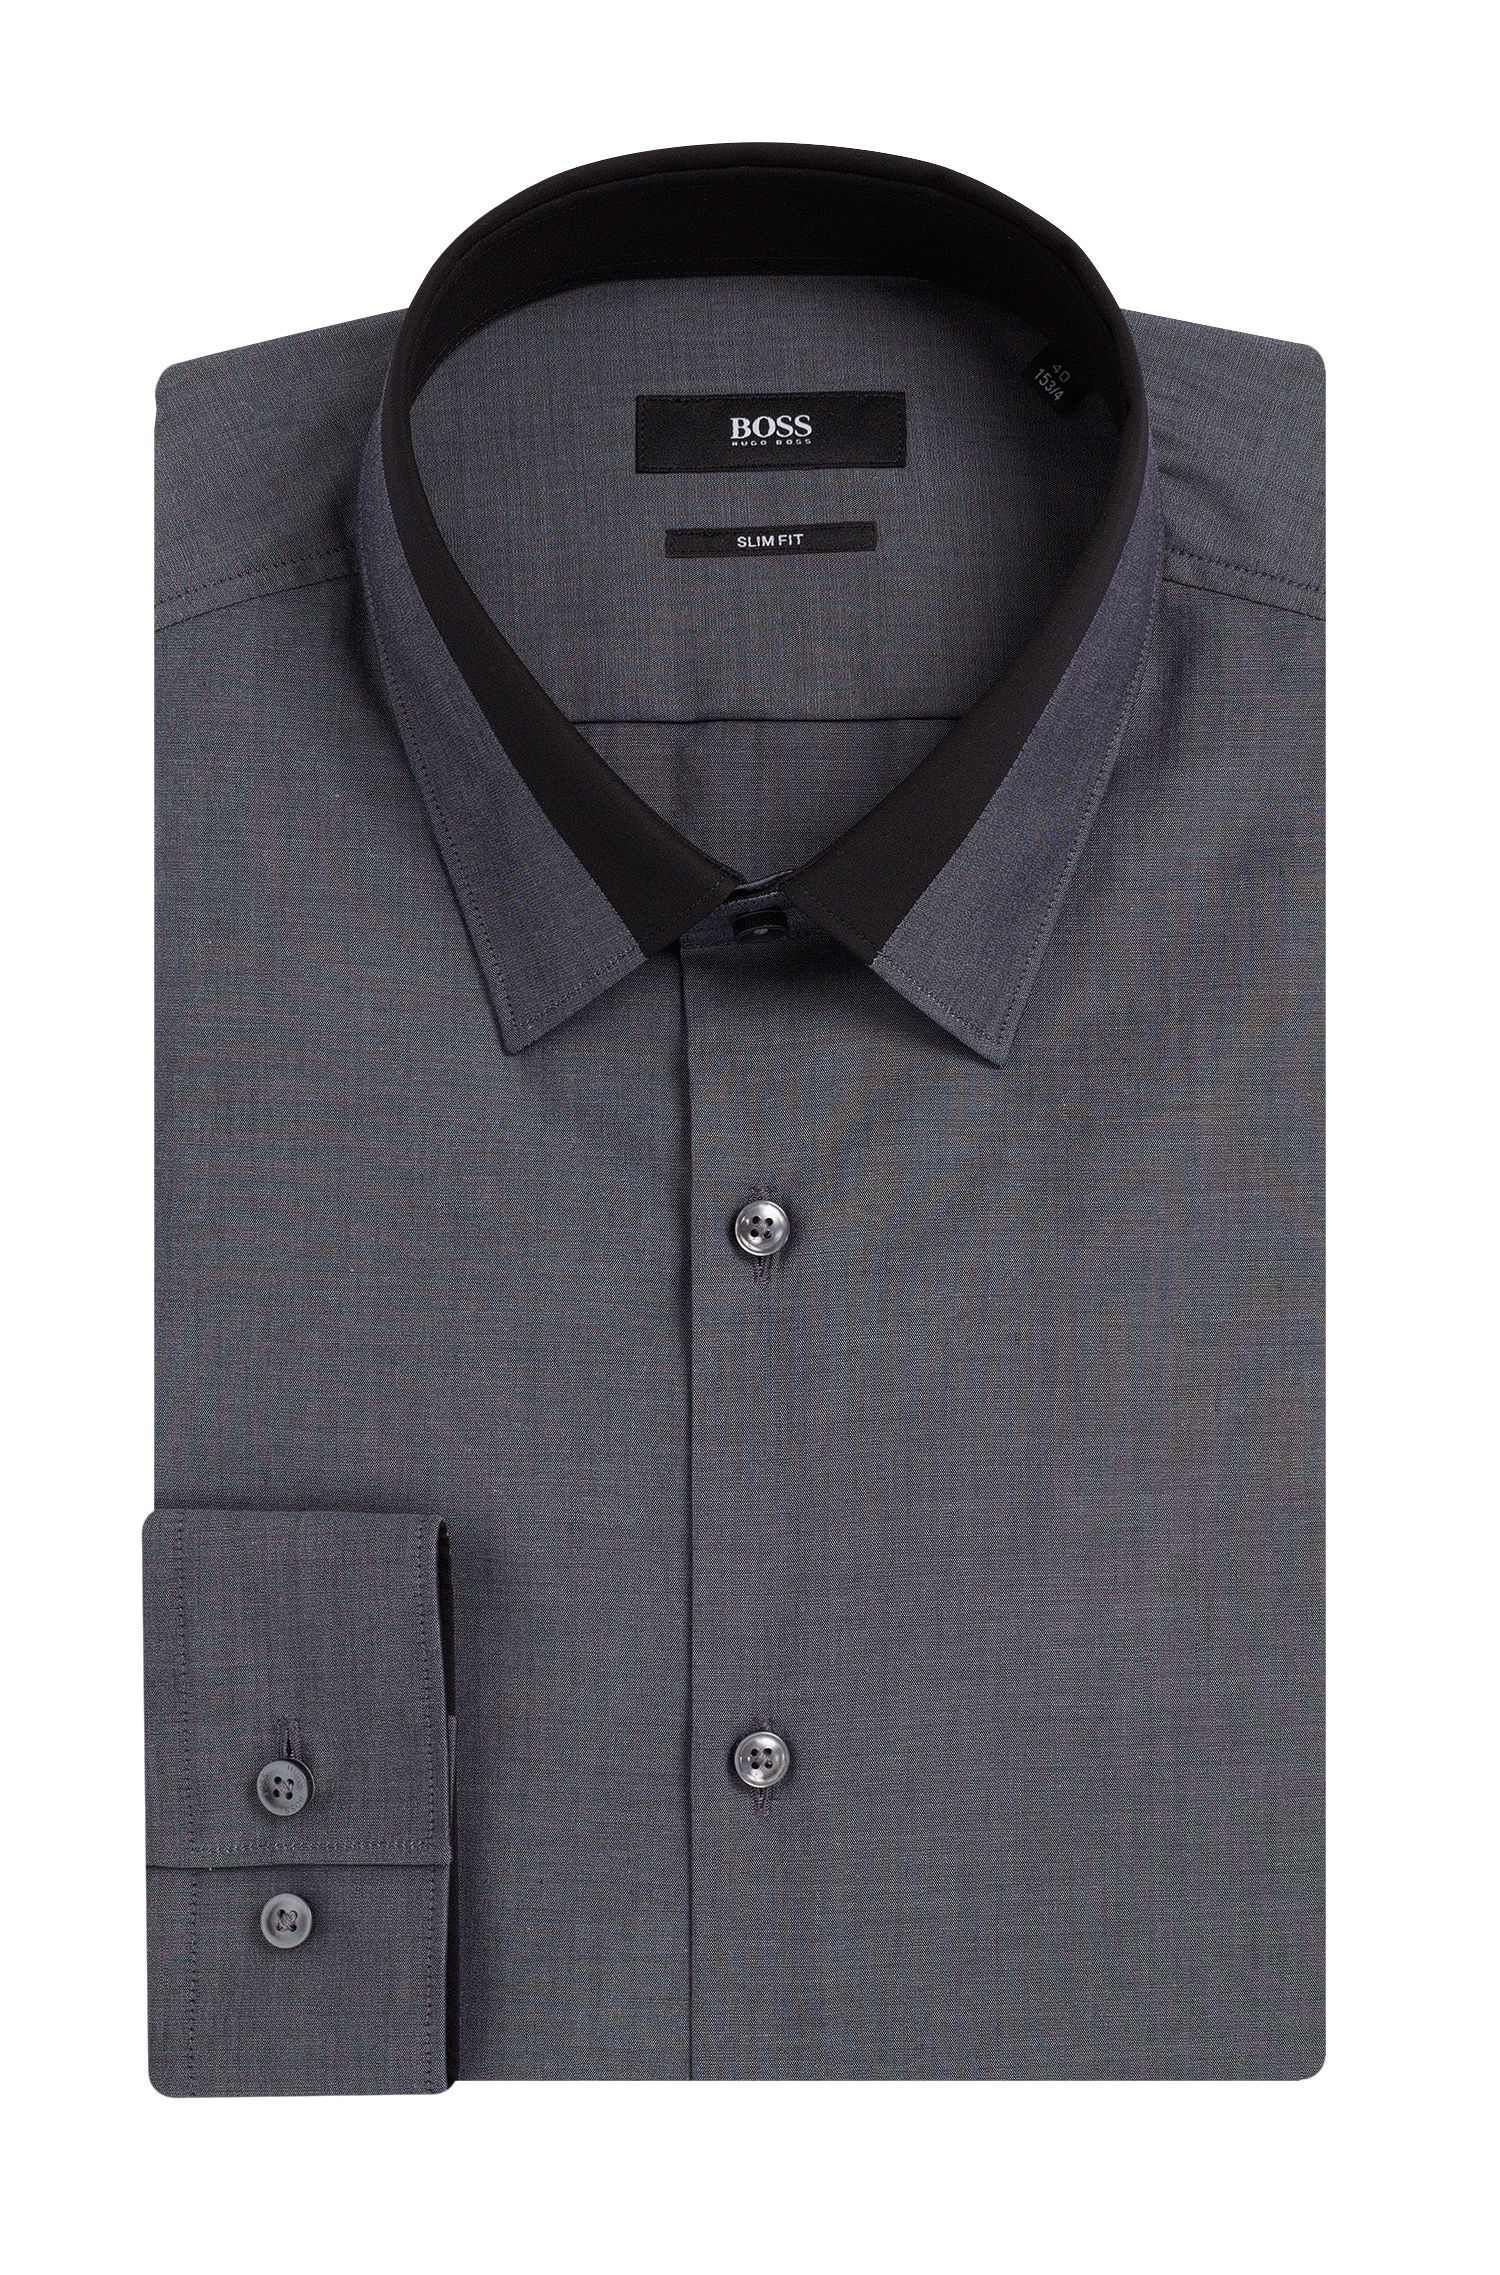 'Jarret' | Slim Fit, Contrast Collar Dress Shirt